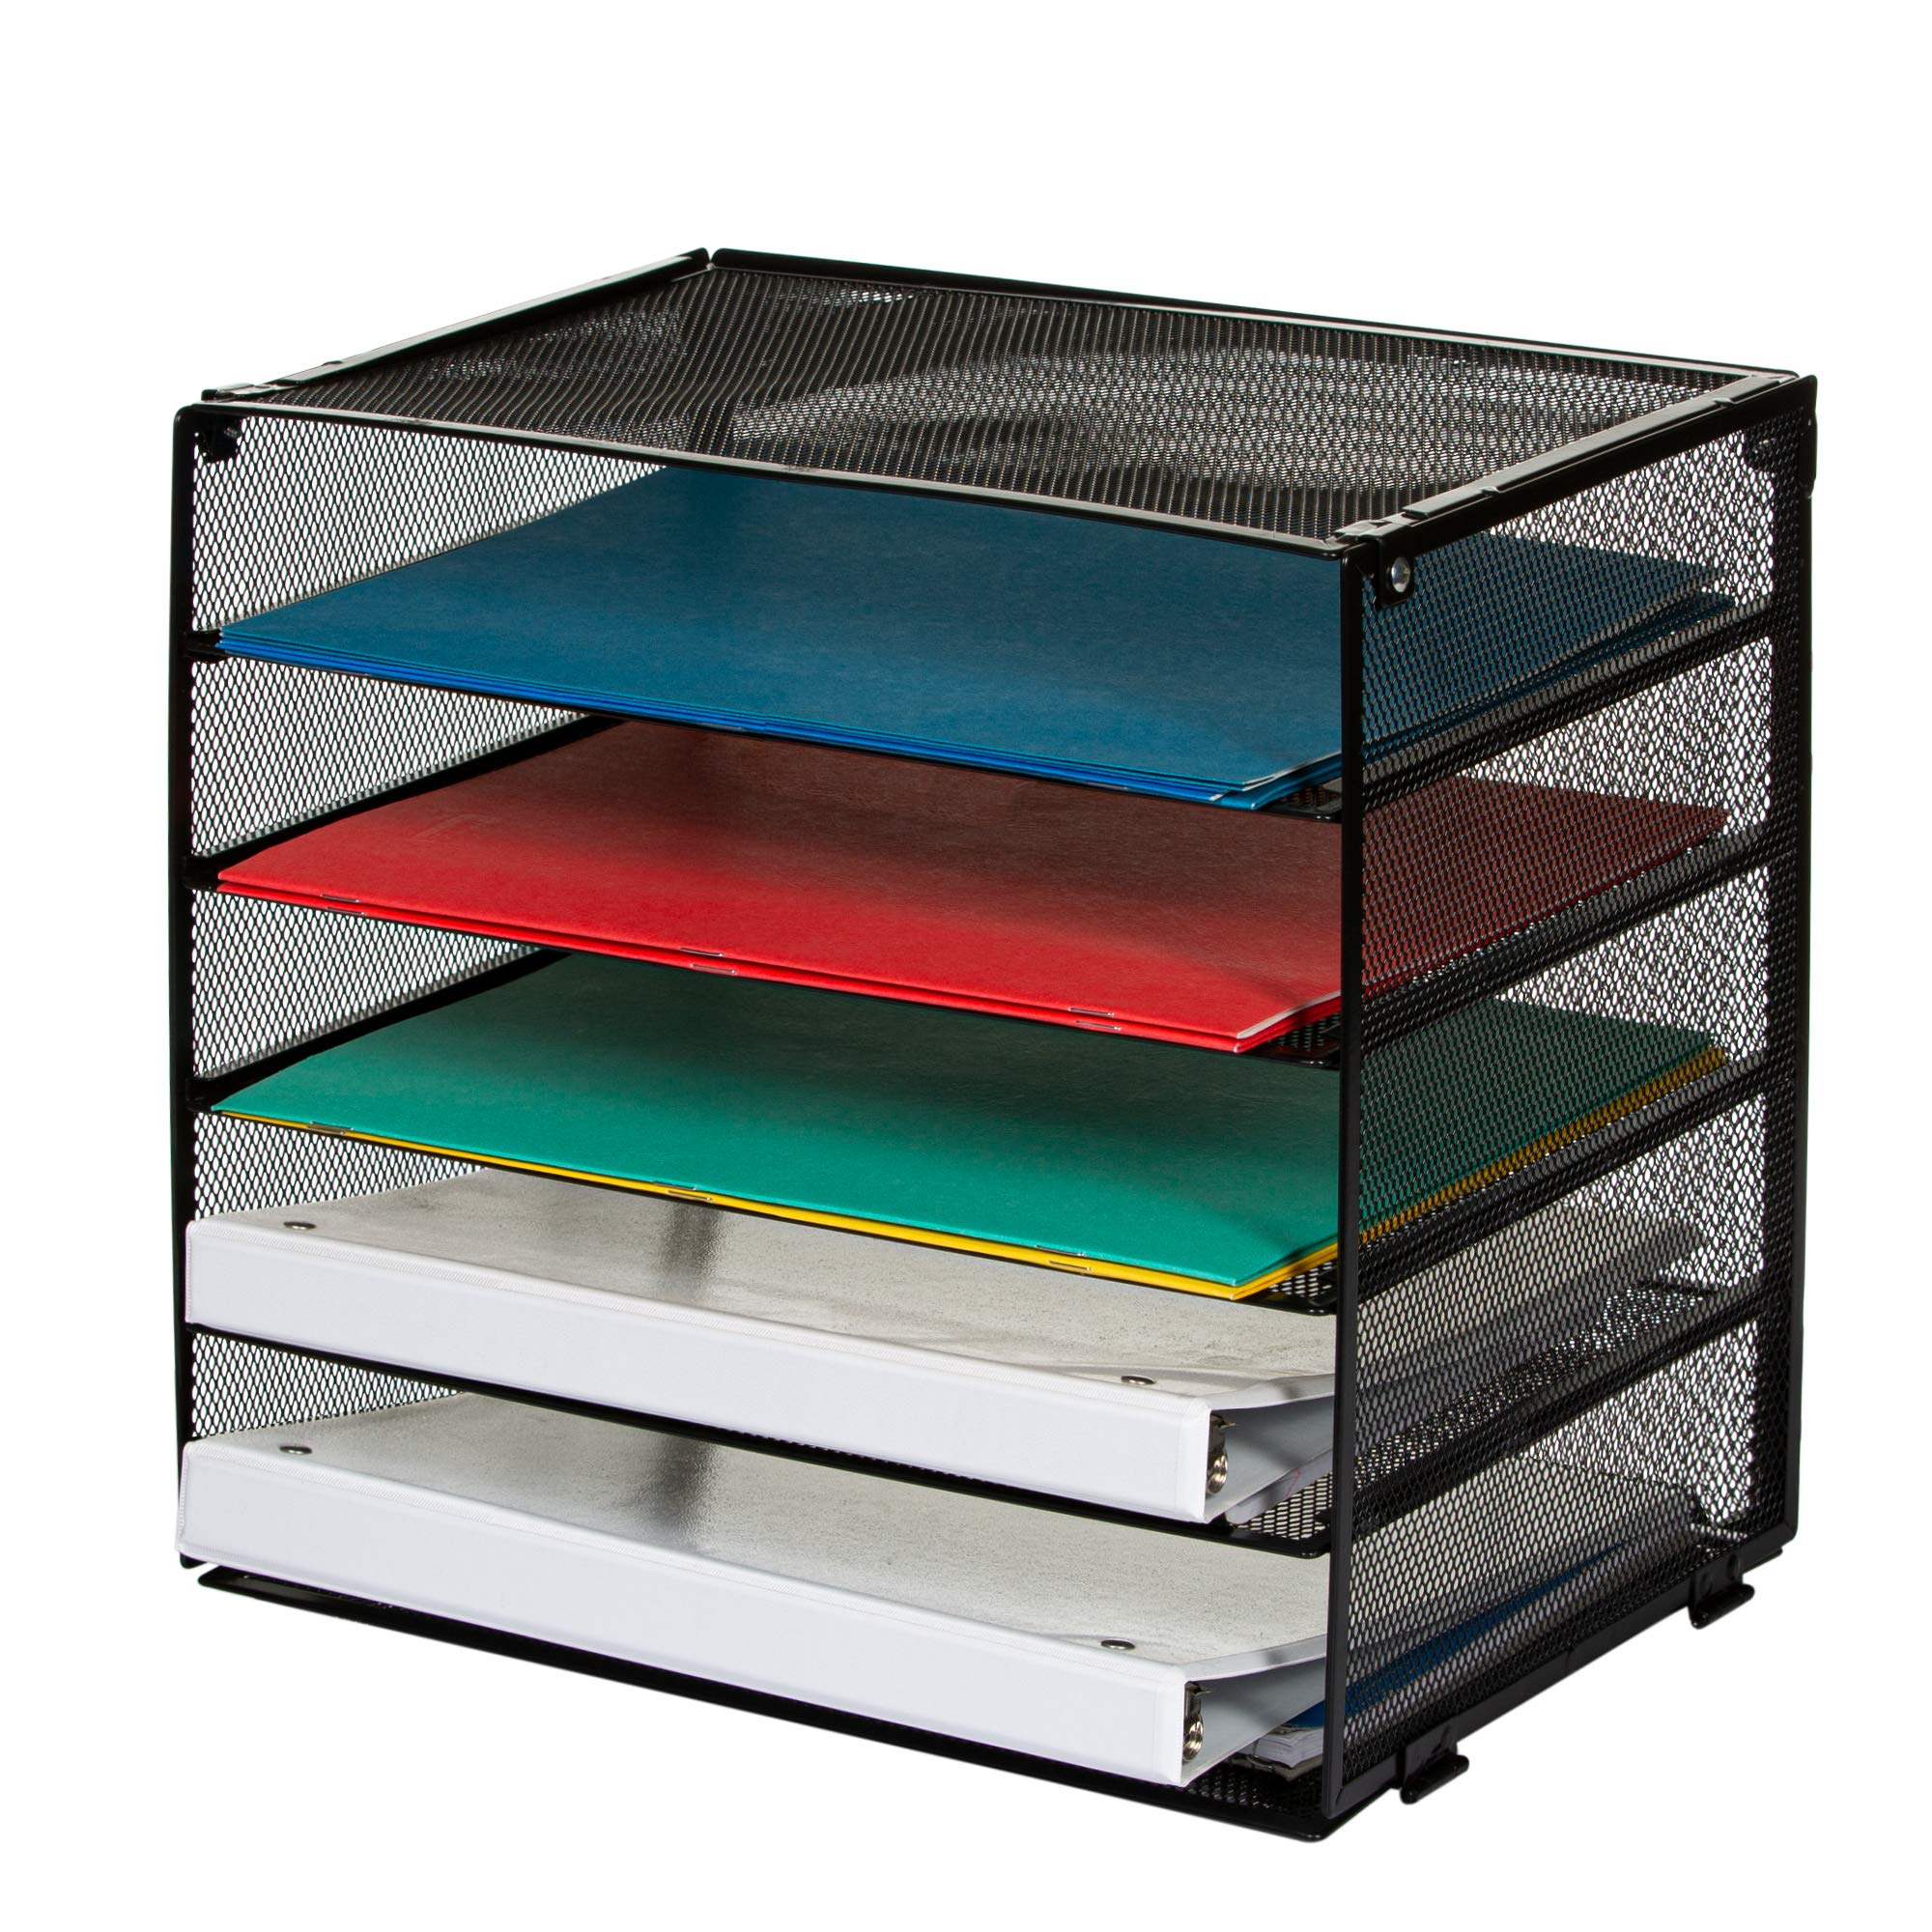 Paper Organizer - Desk File Sorter - 5 Tier Letter Tray for Office - Large Mesh Metal Tray for Paperwork and Files - Stackable Trays and Sorter with Retractable Tiers - Heavy Duty Metal Construction by vroomo